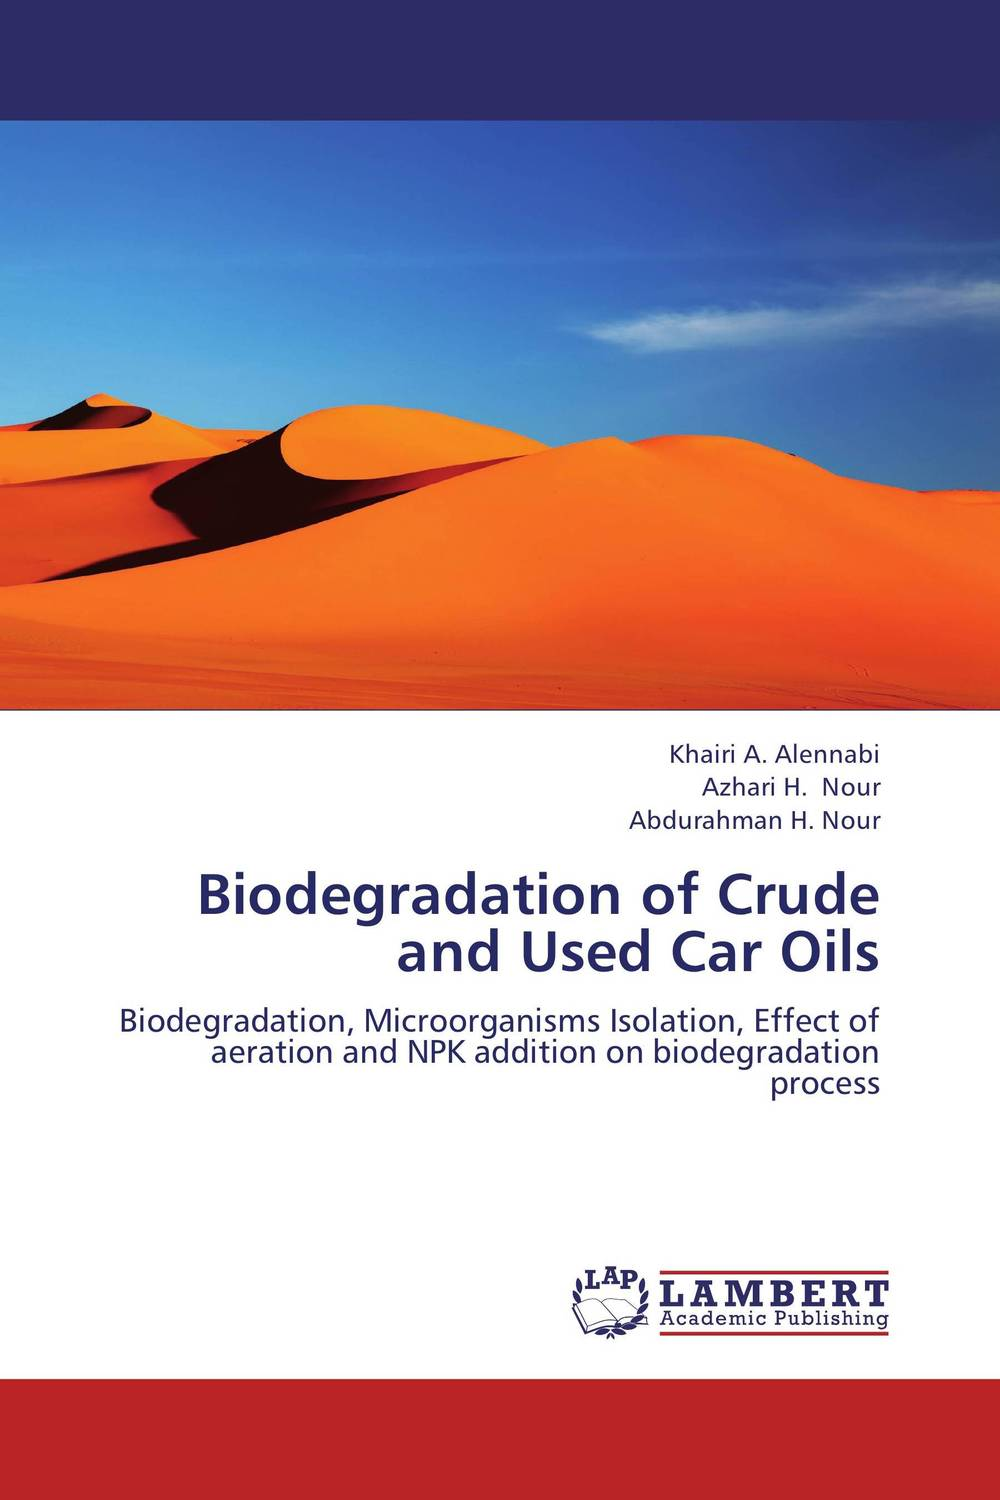 Biodegradation of Crude and Used Car Oils evolution of crude oil price term structure